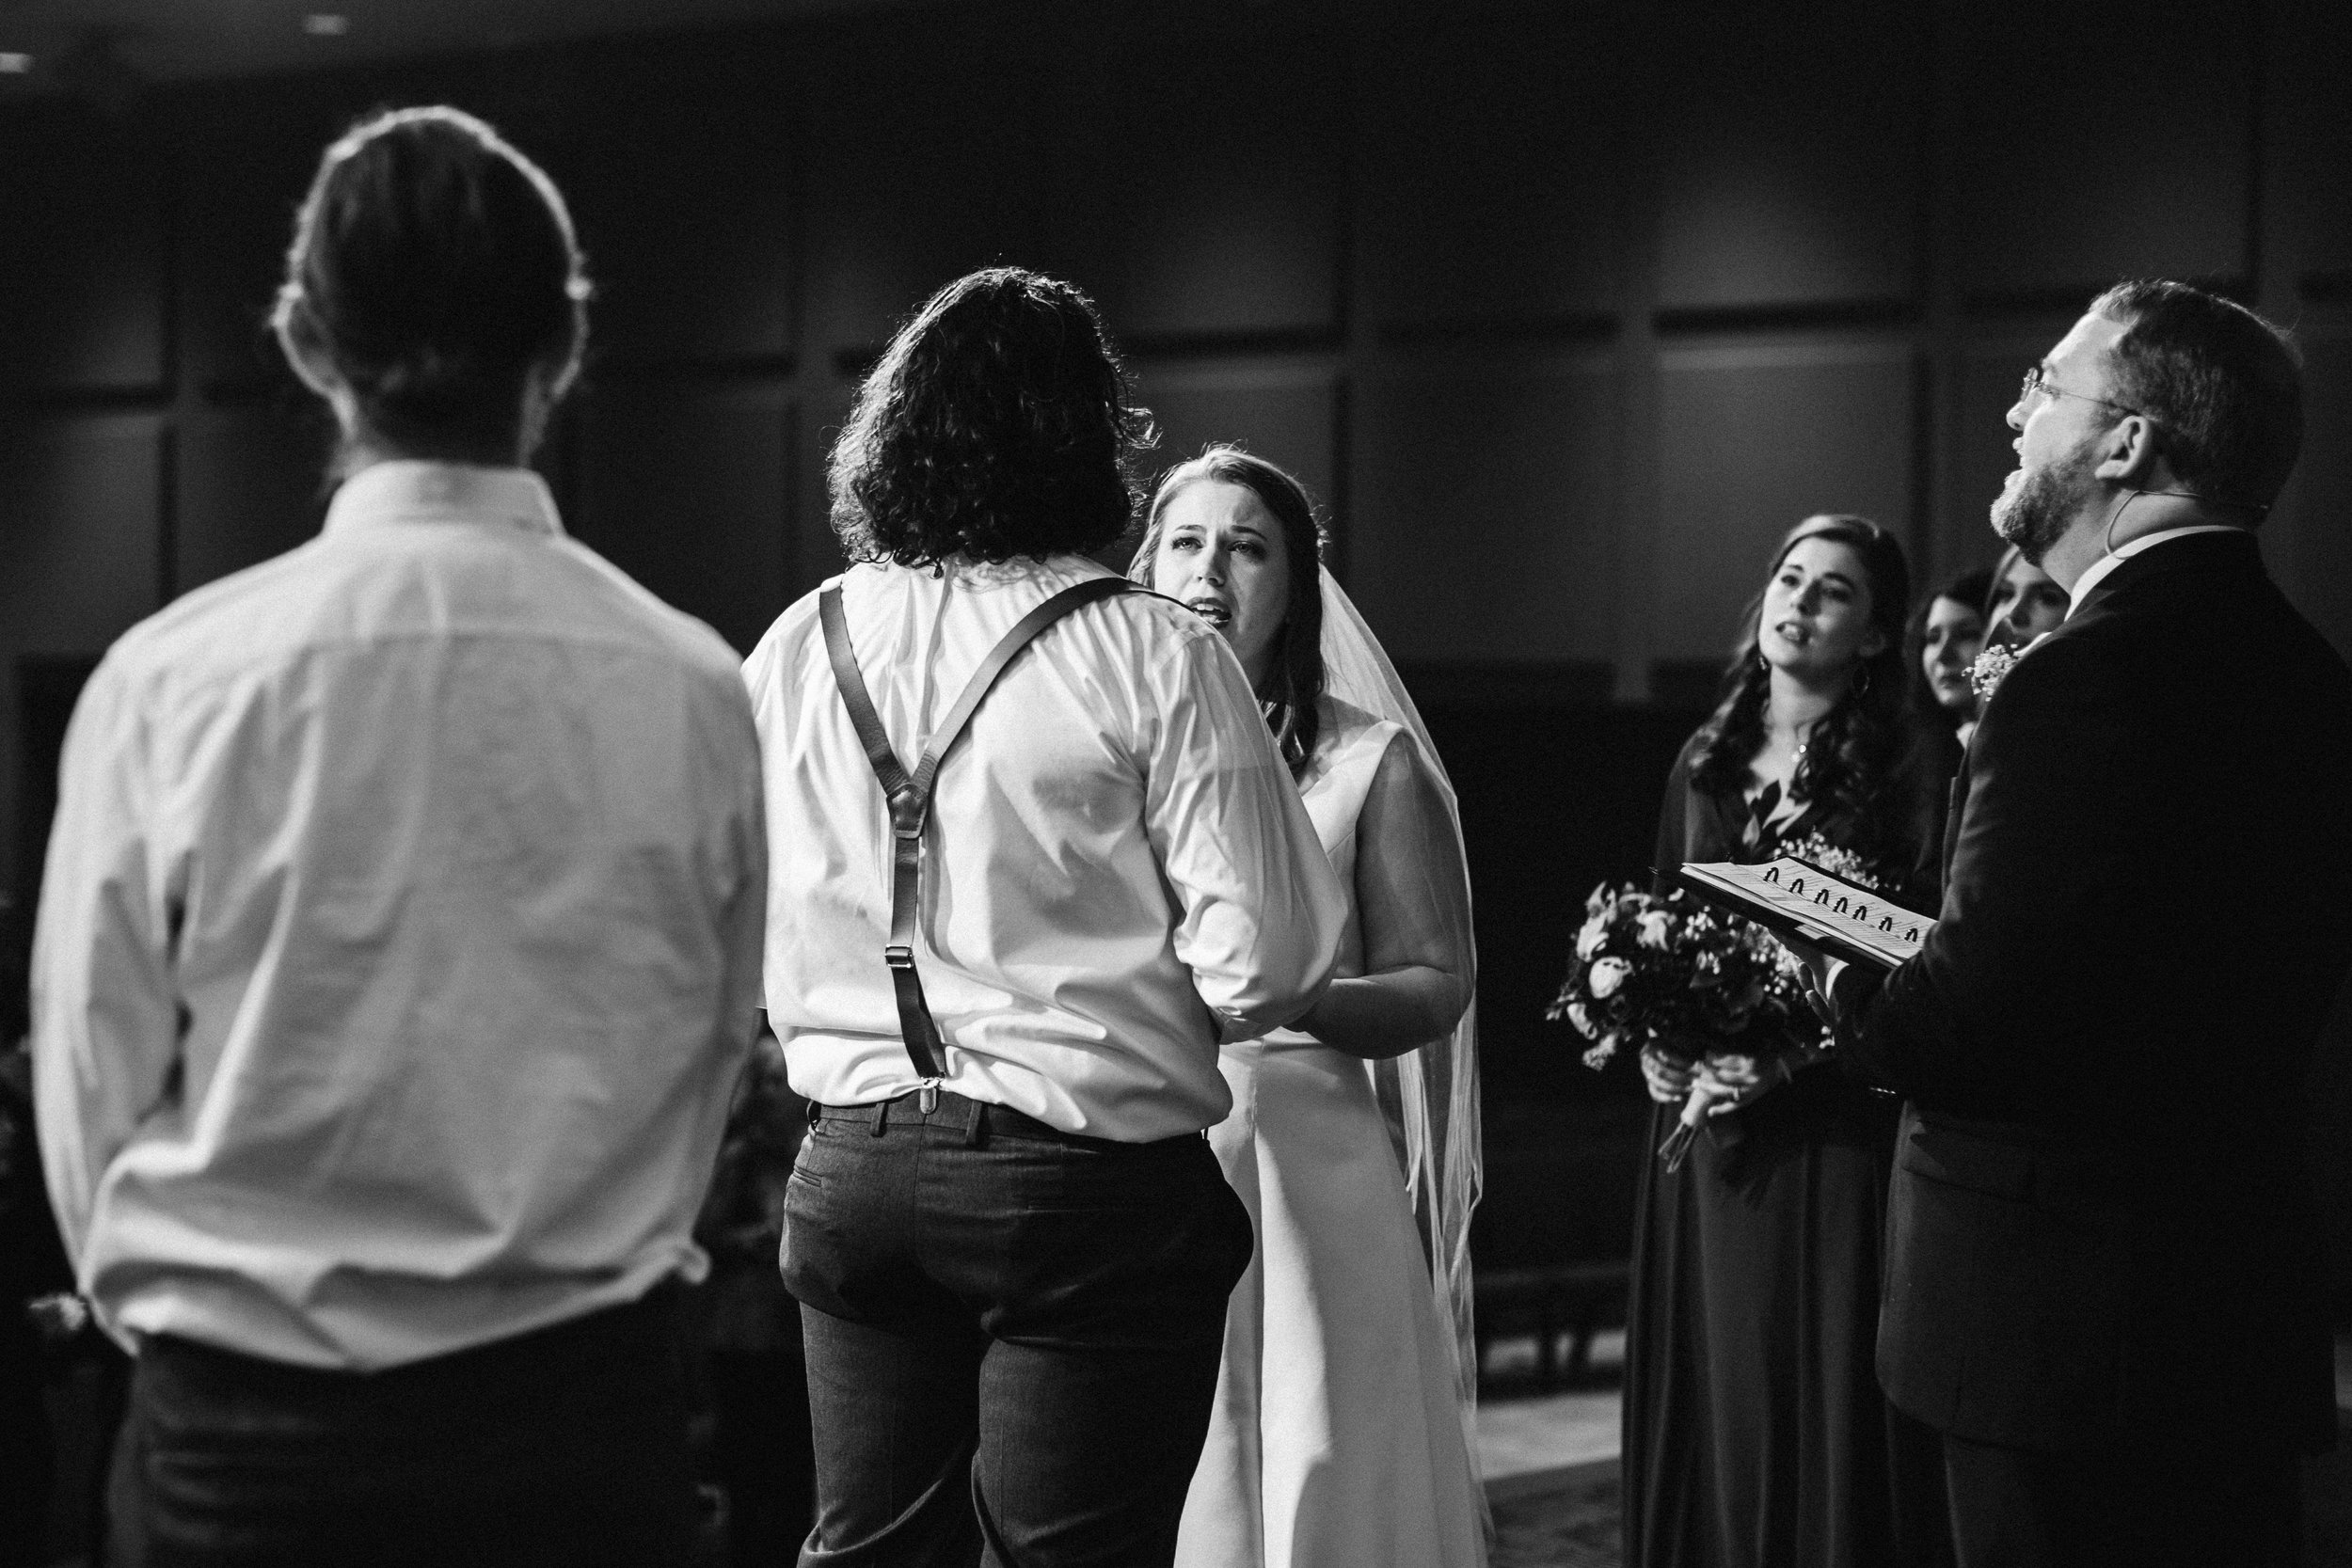 2019.01.26 Joshua and Sara Taylor North Carolina Wedding Finals (261).jpg